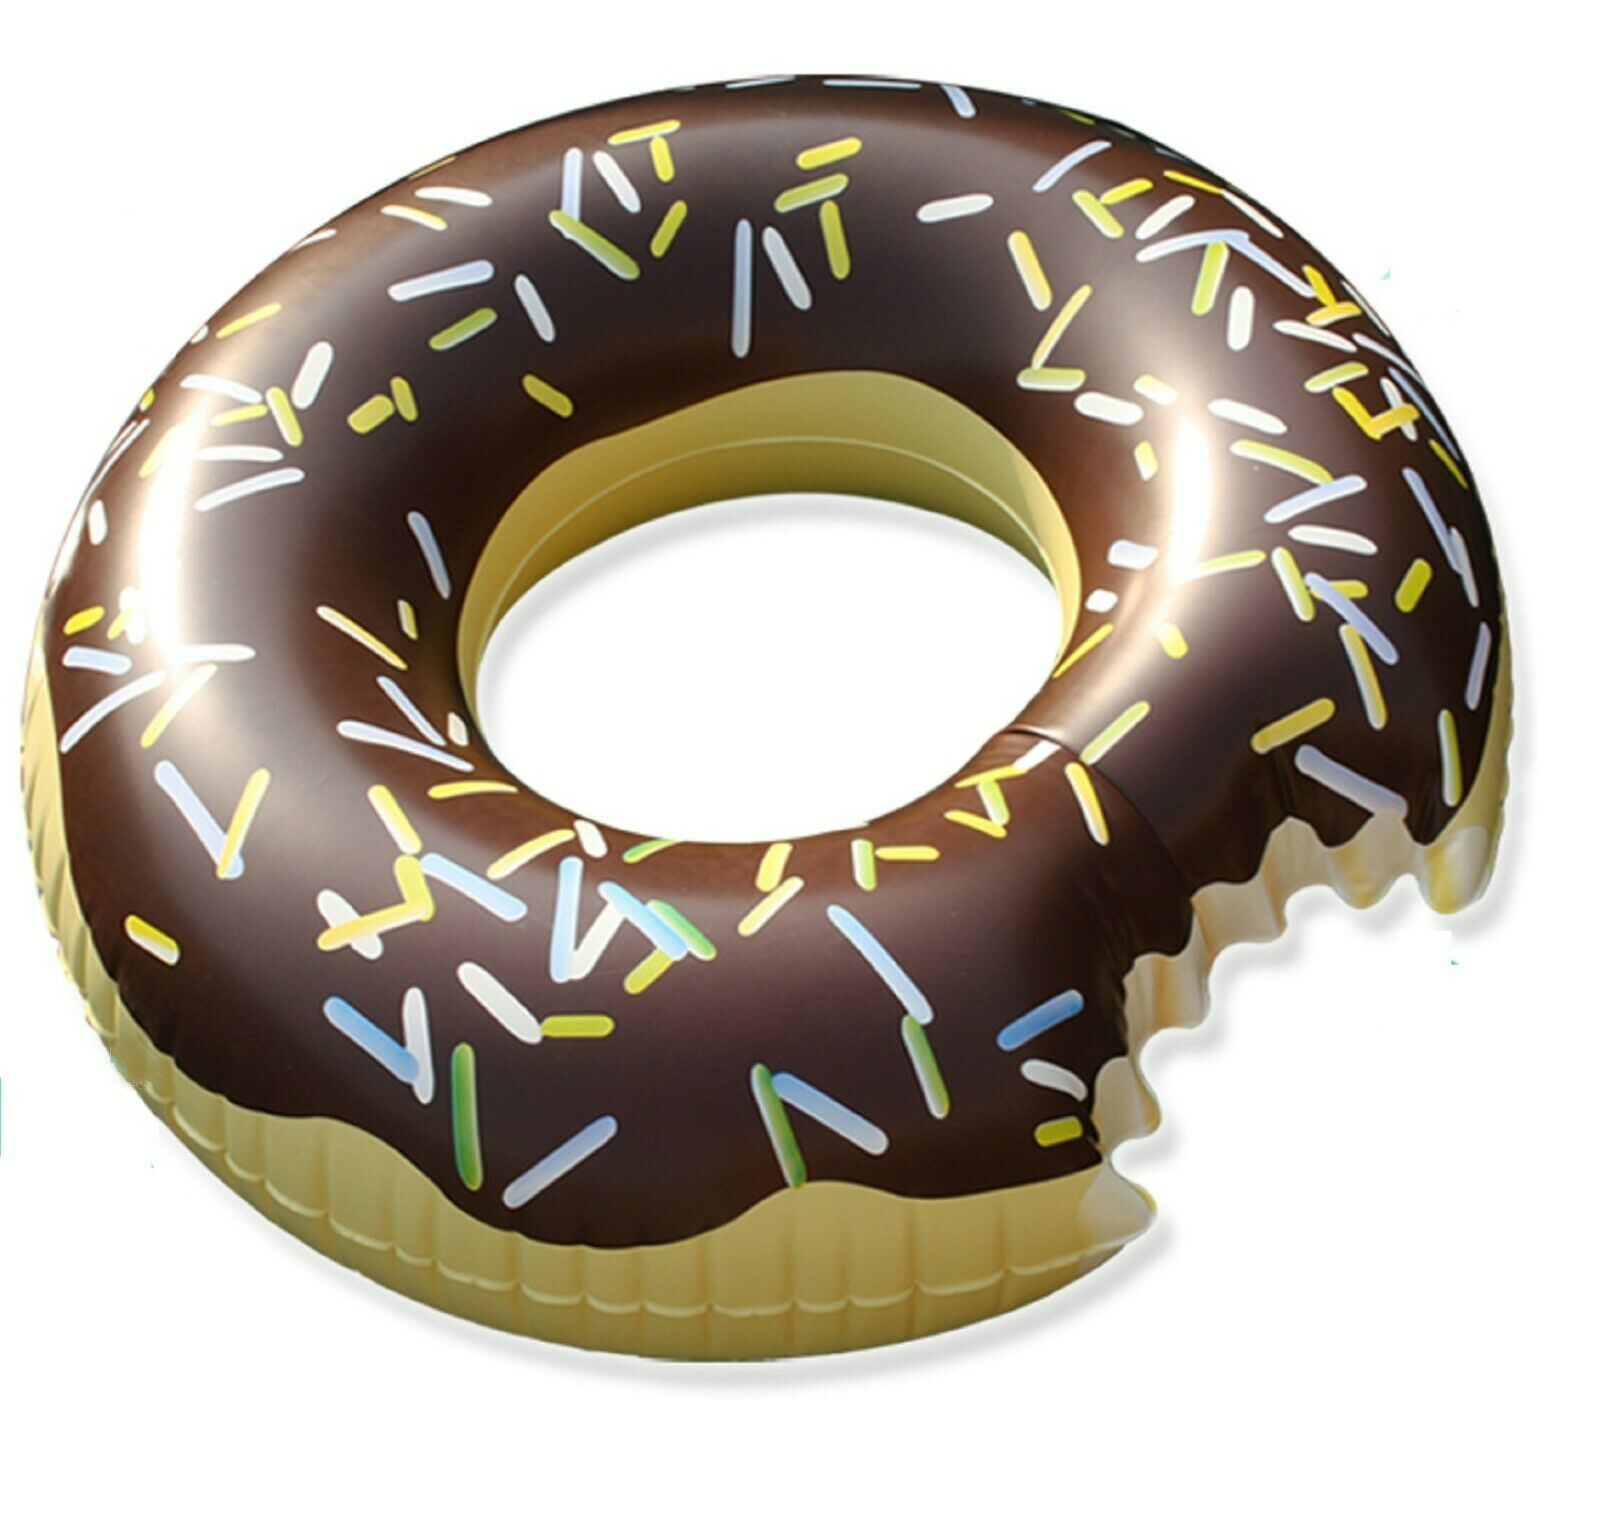 Swim About Large Donut Swim Ring Tube Pool Inflatable Floats for Adults (Brown)